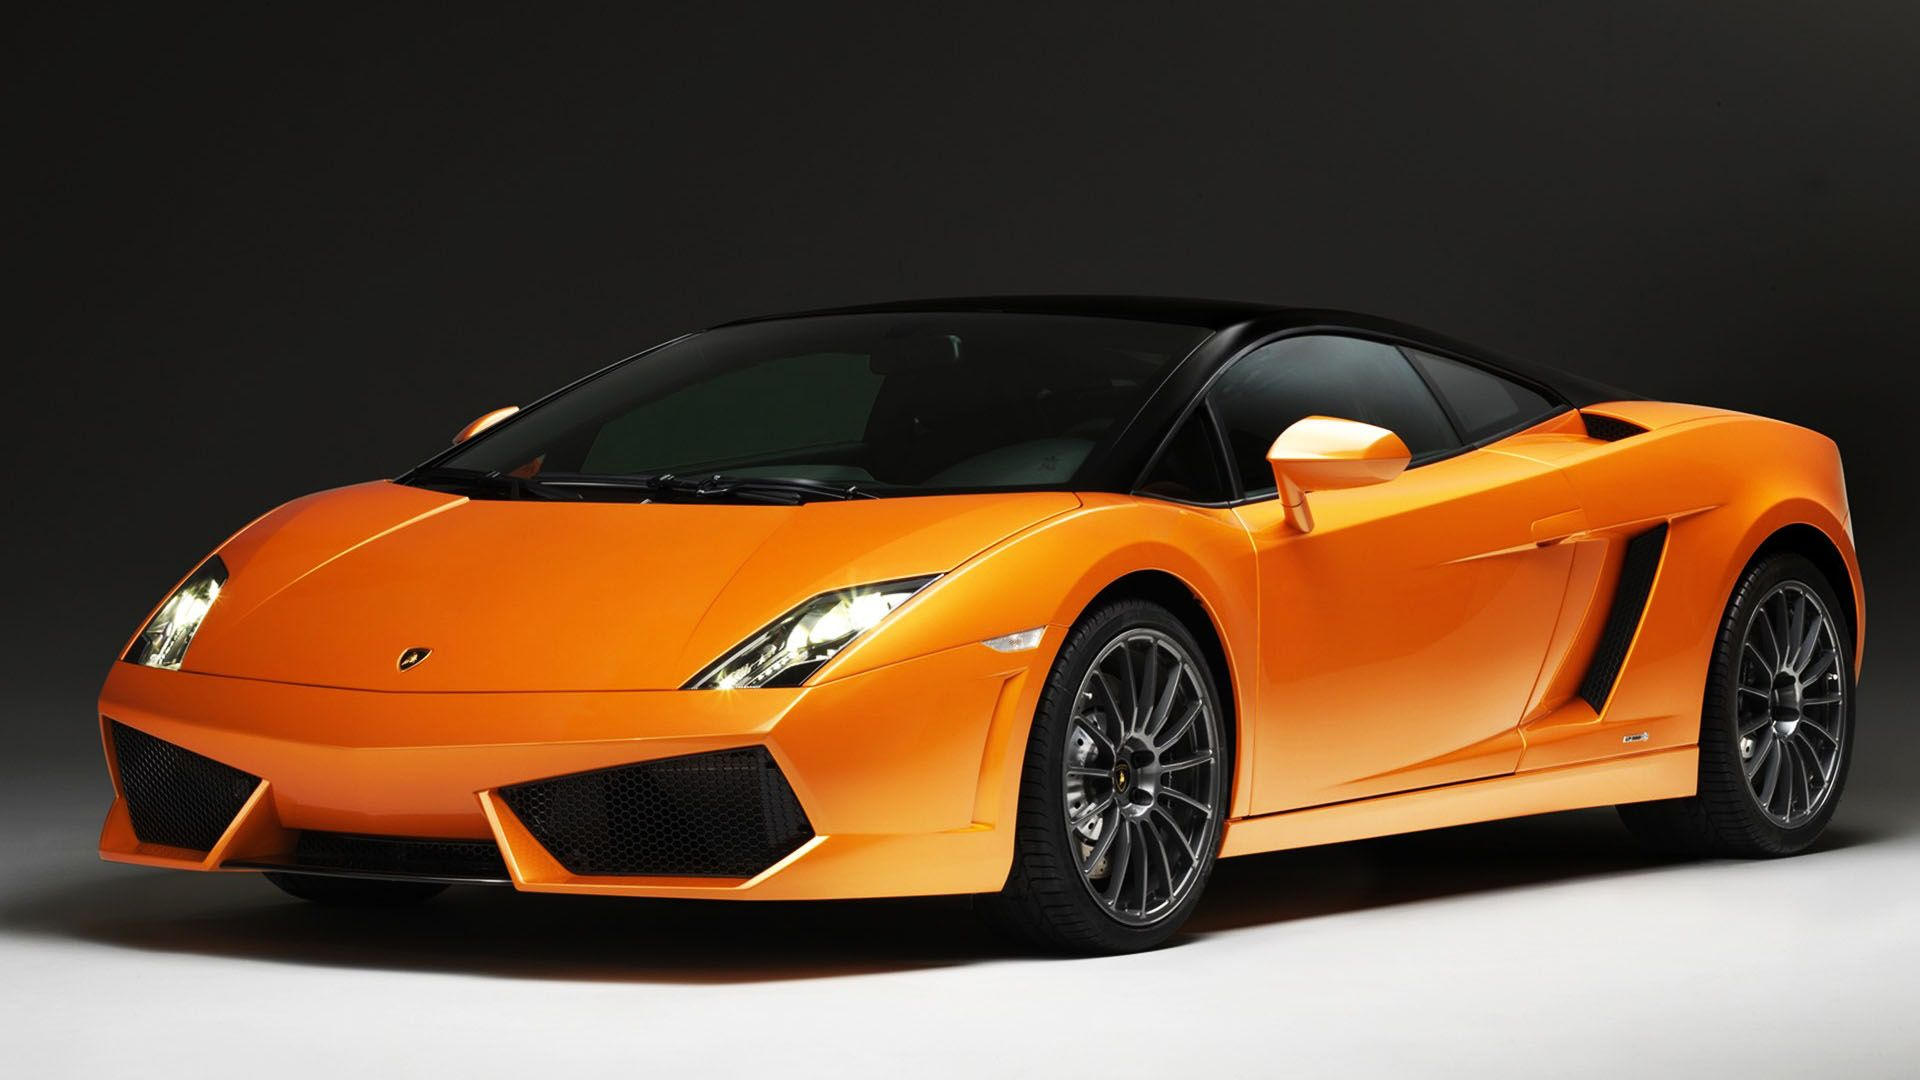 Lamborghini Wallpapers 1080p 1920x1080